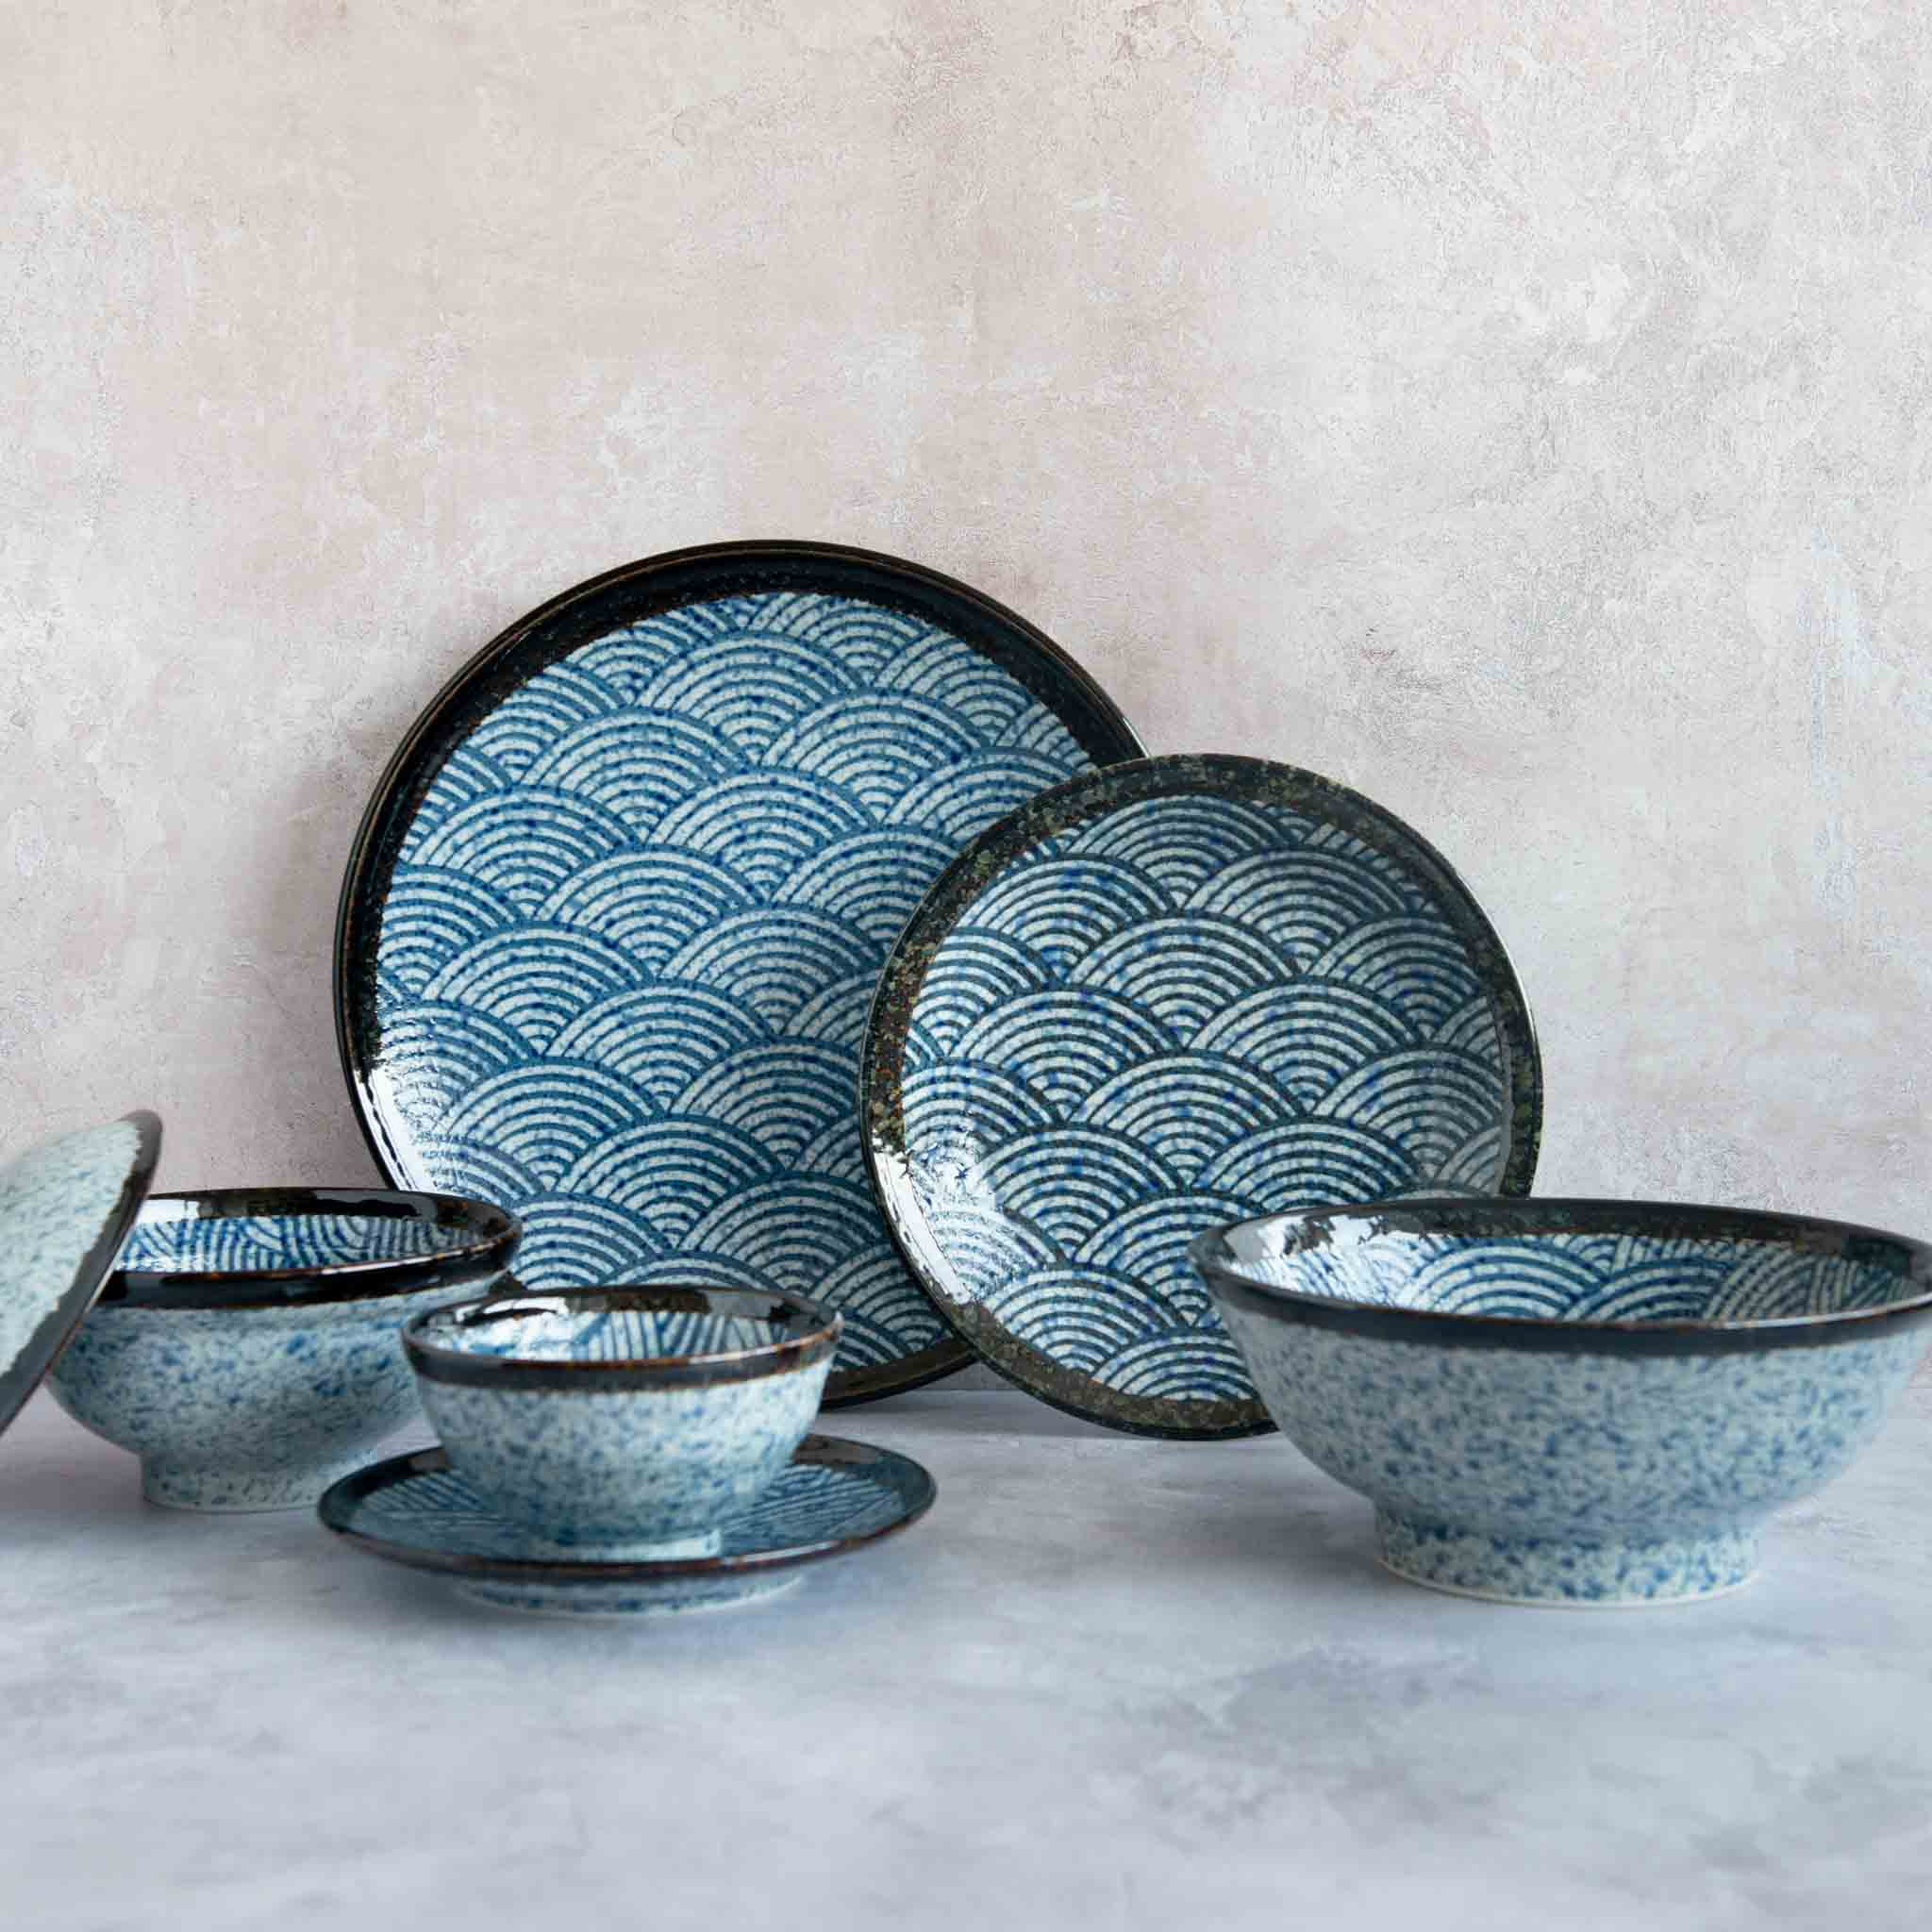 Kiji Stoneware & Ceramics Blue Wave Medium Plate Tableware Japanese Tableware